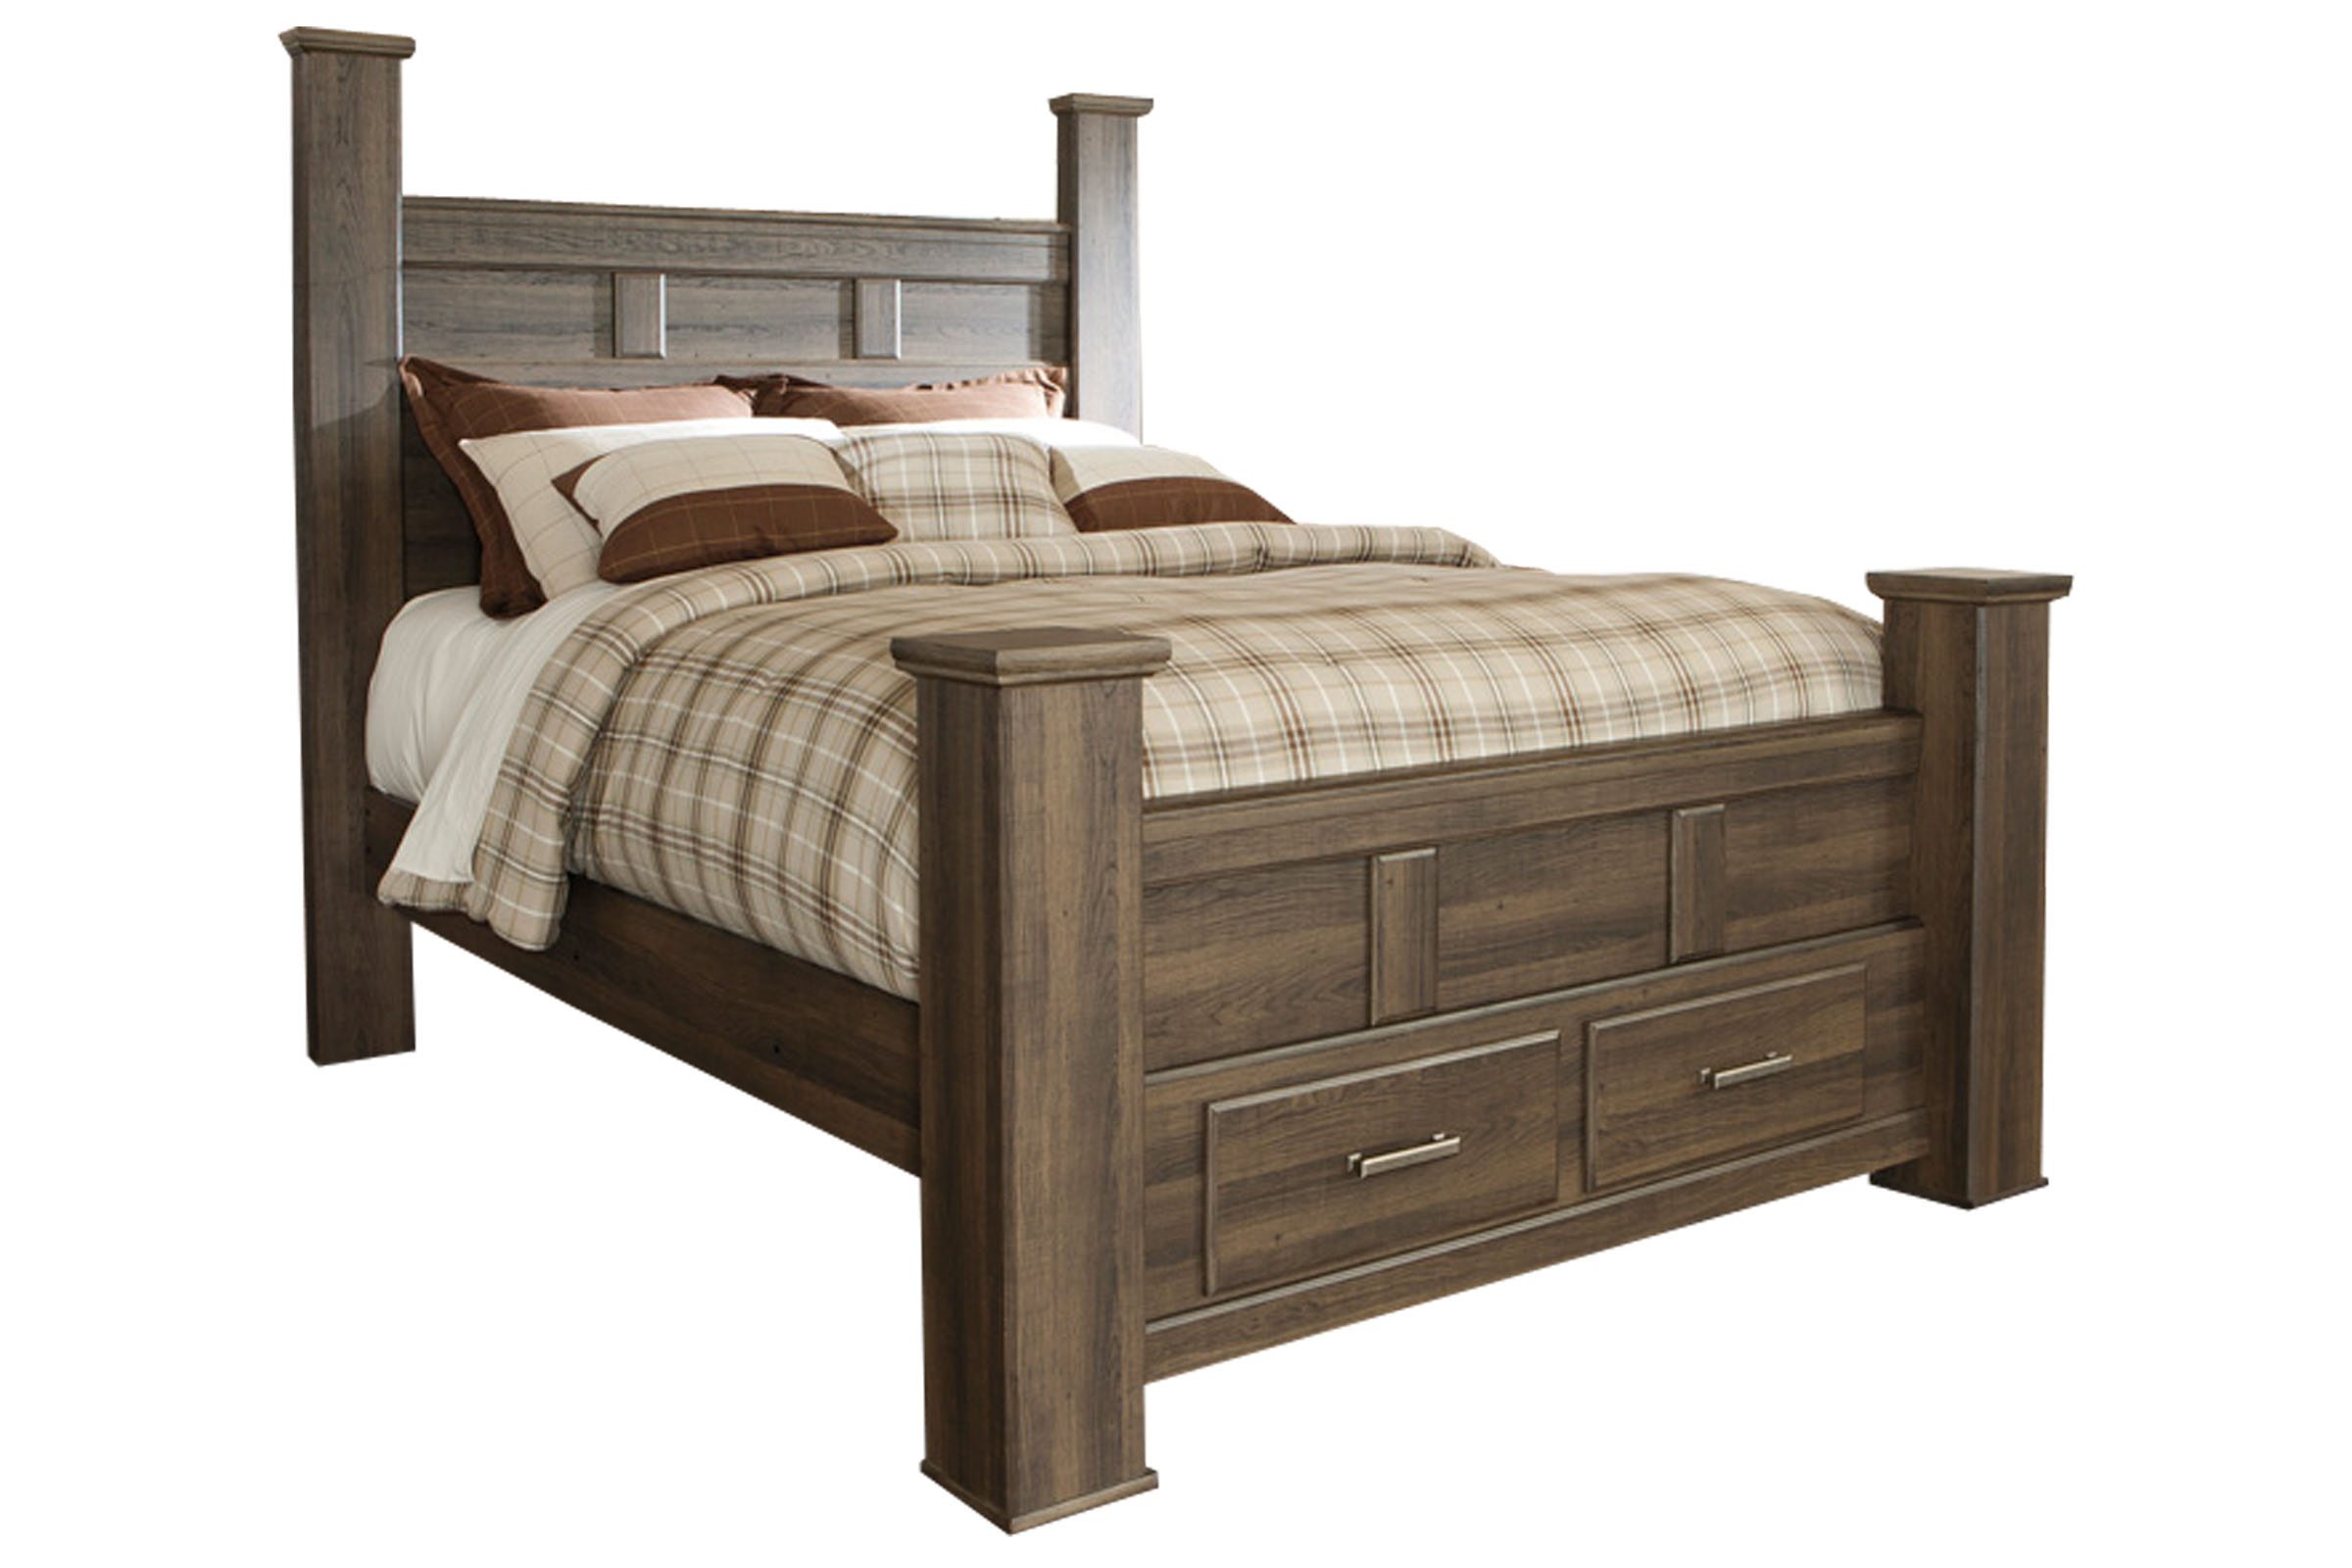 jeri queen bed with storage footboard save 260 now